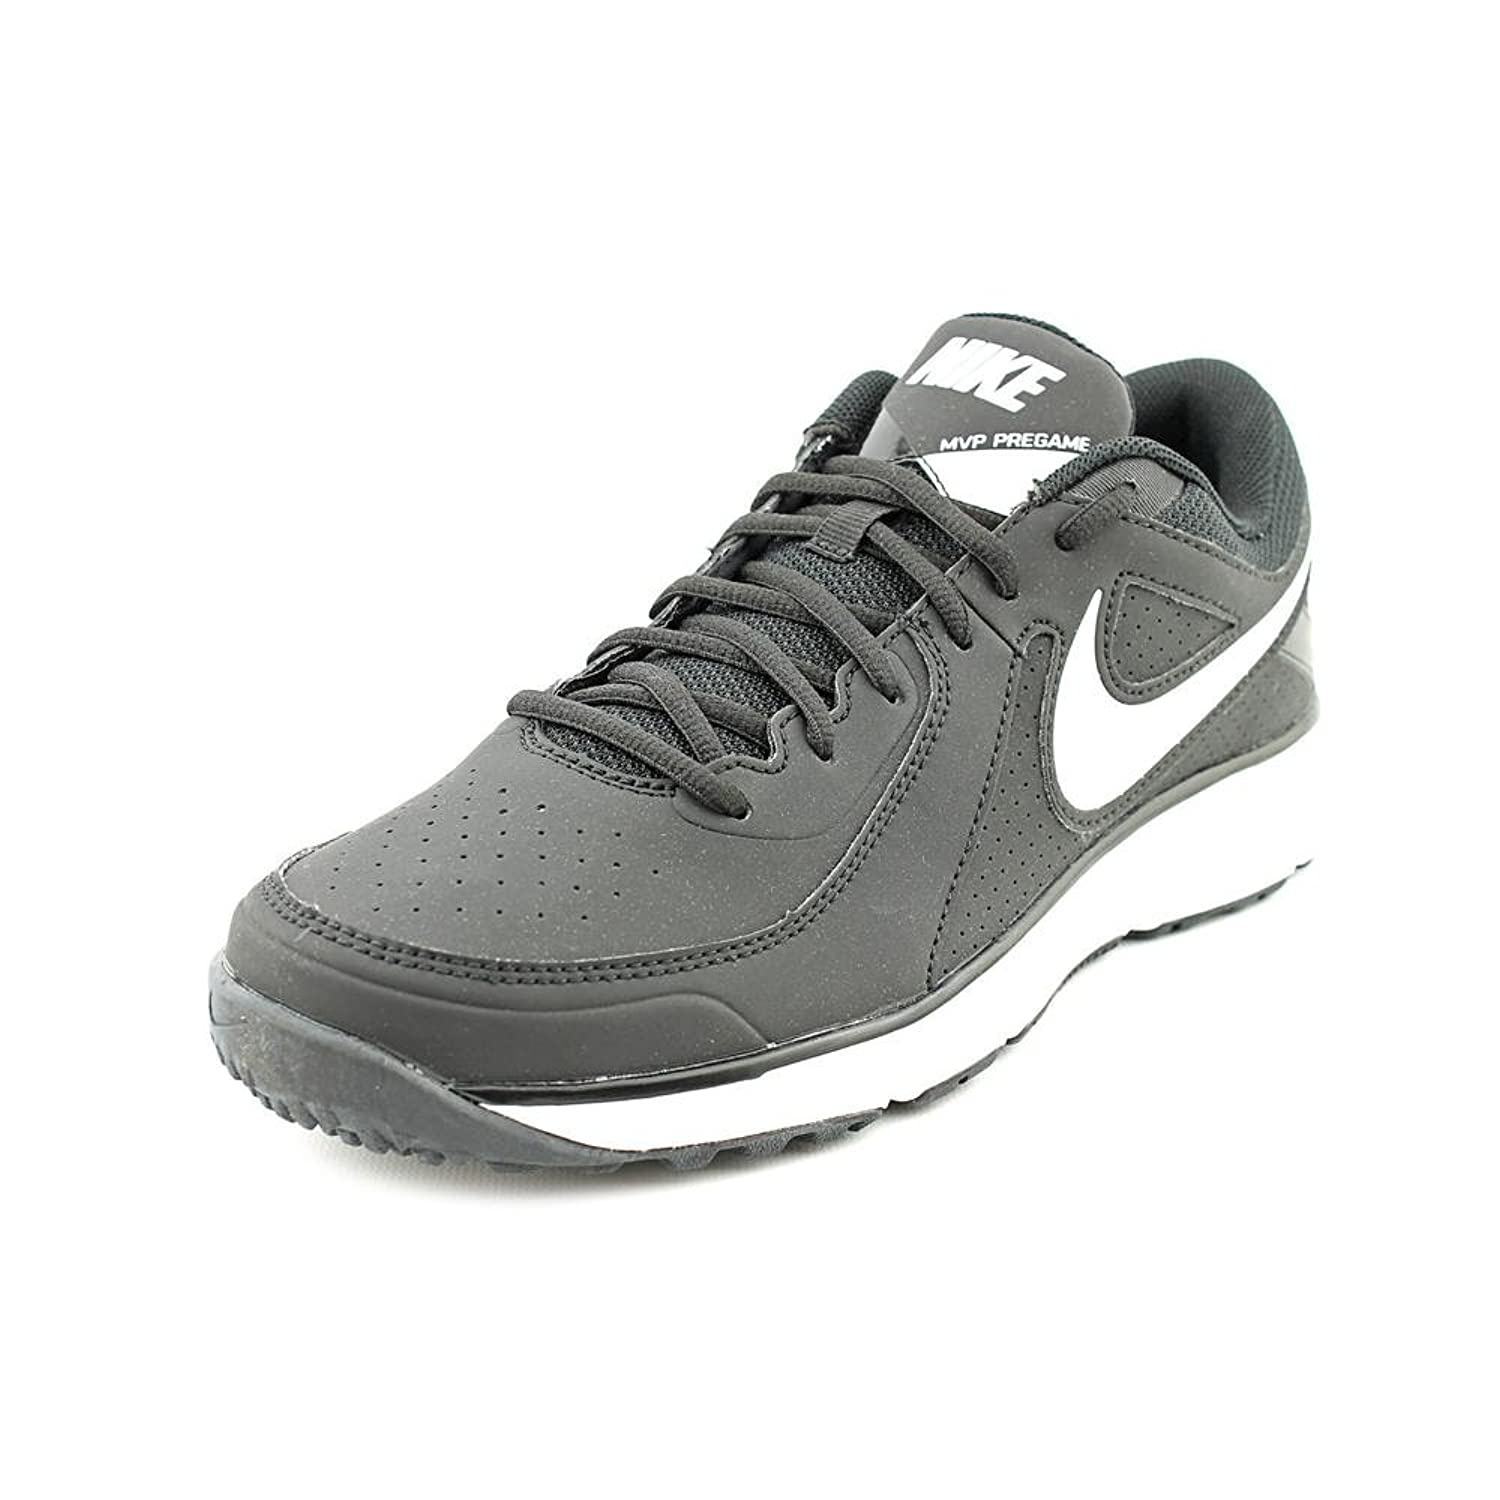 the best attitude 5d419 157bc nike mens lunar mvp pro pregame baseball shoe